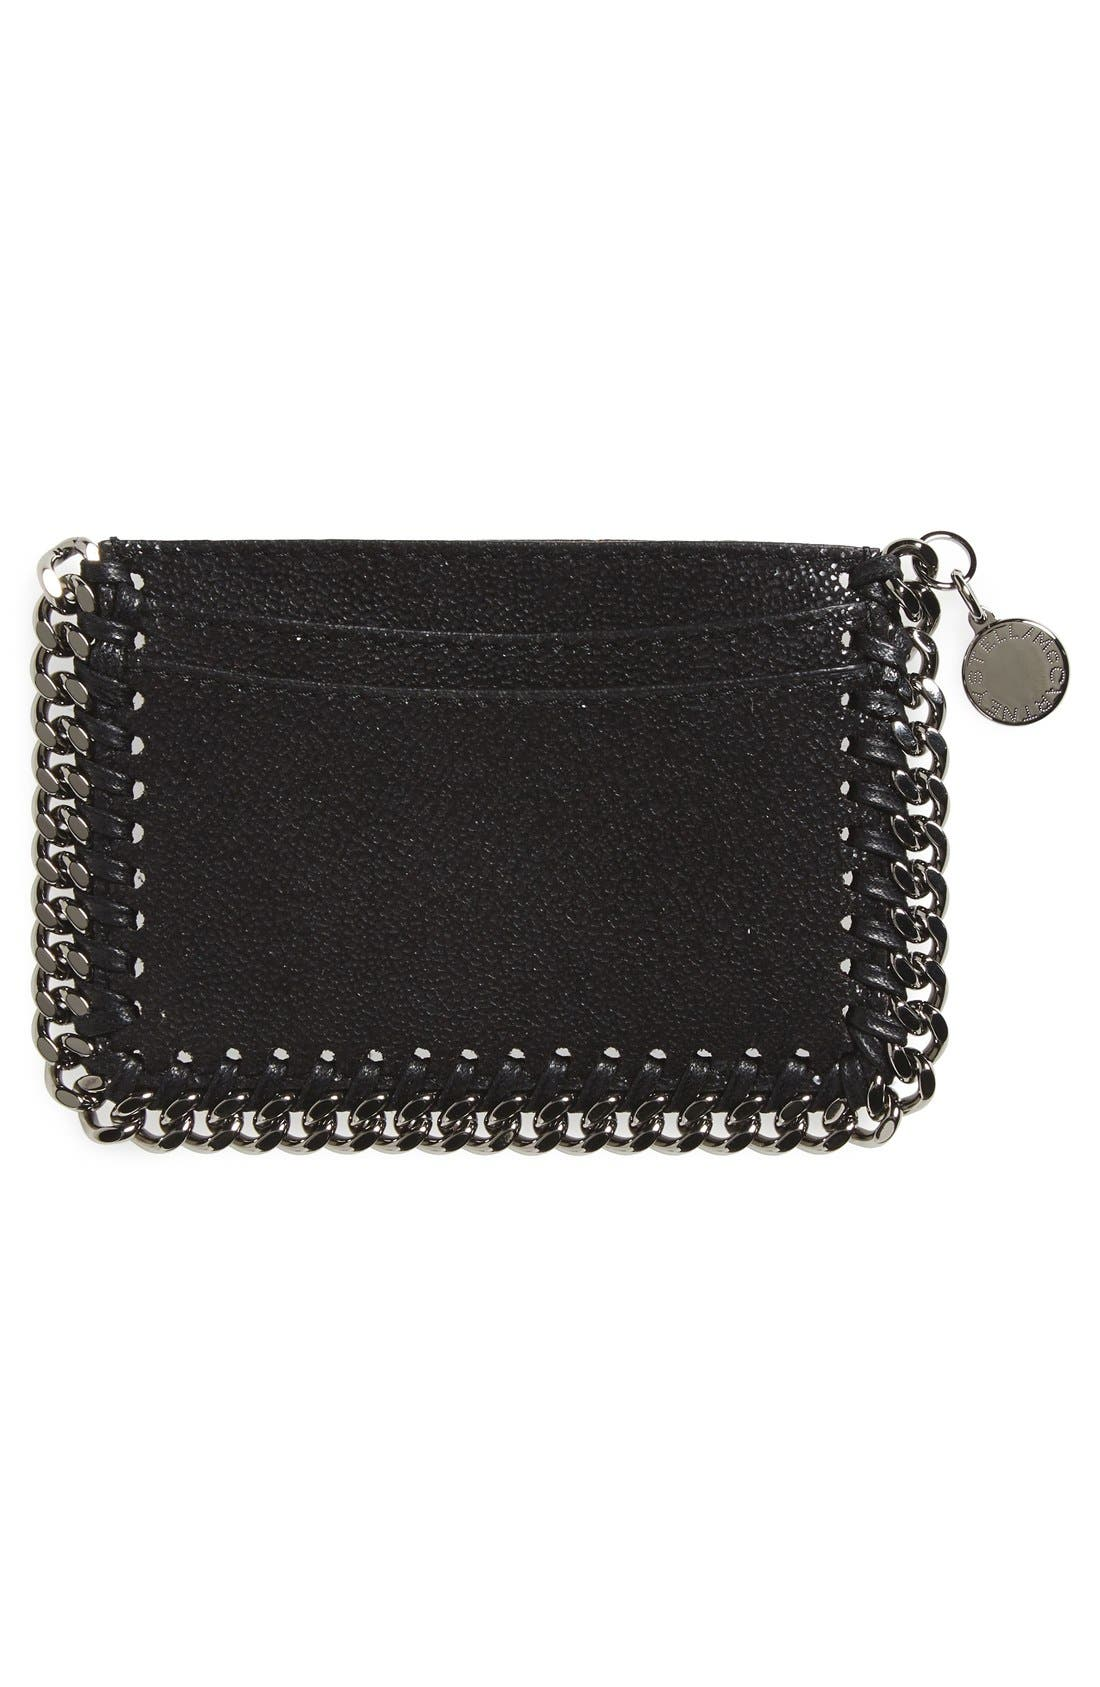 'Falabella - Shaggy Deer' Card Case,                             Alternate thumbnail 2, color,                             BLACK